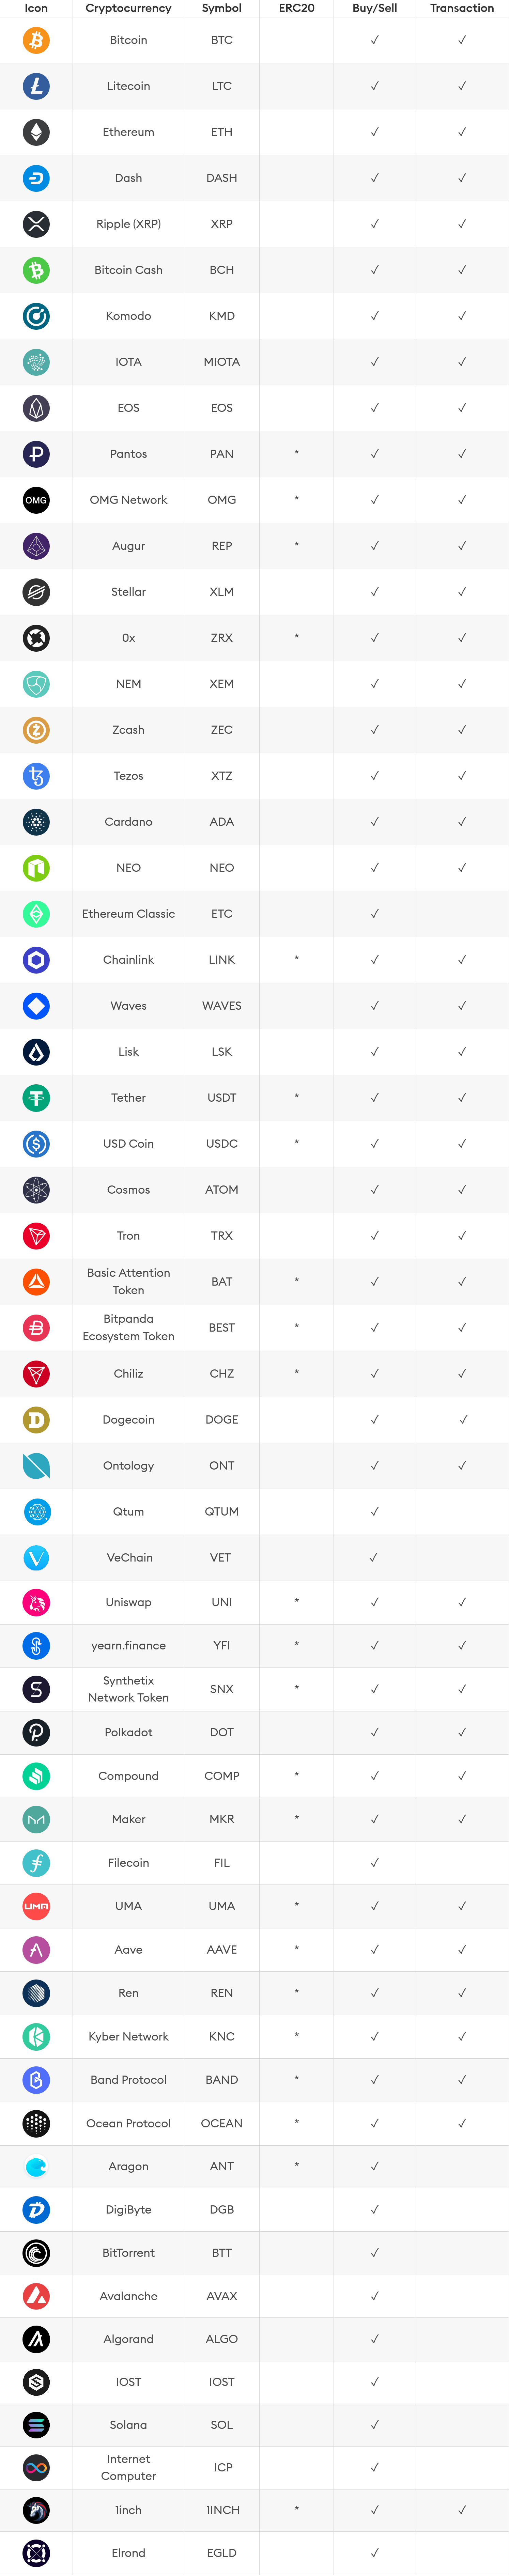 Coins supported by Bitpanda